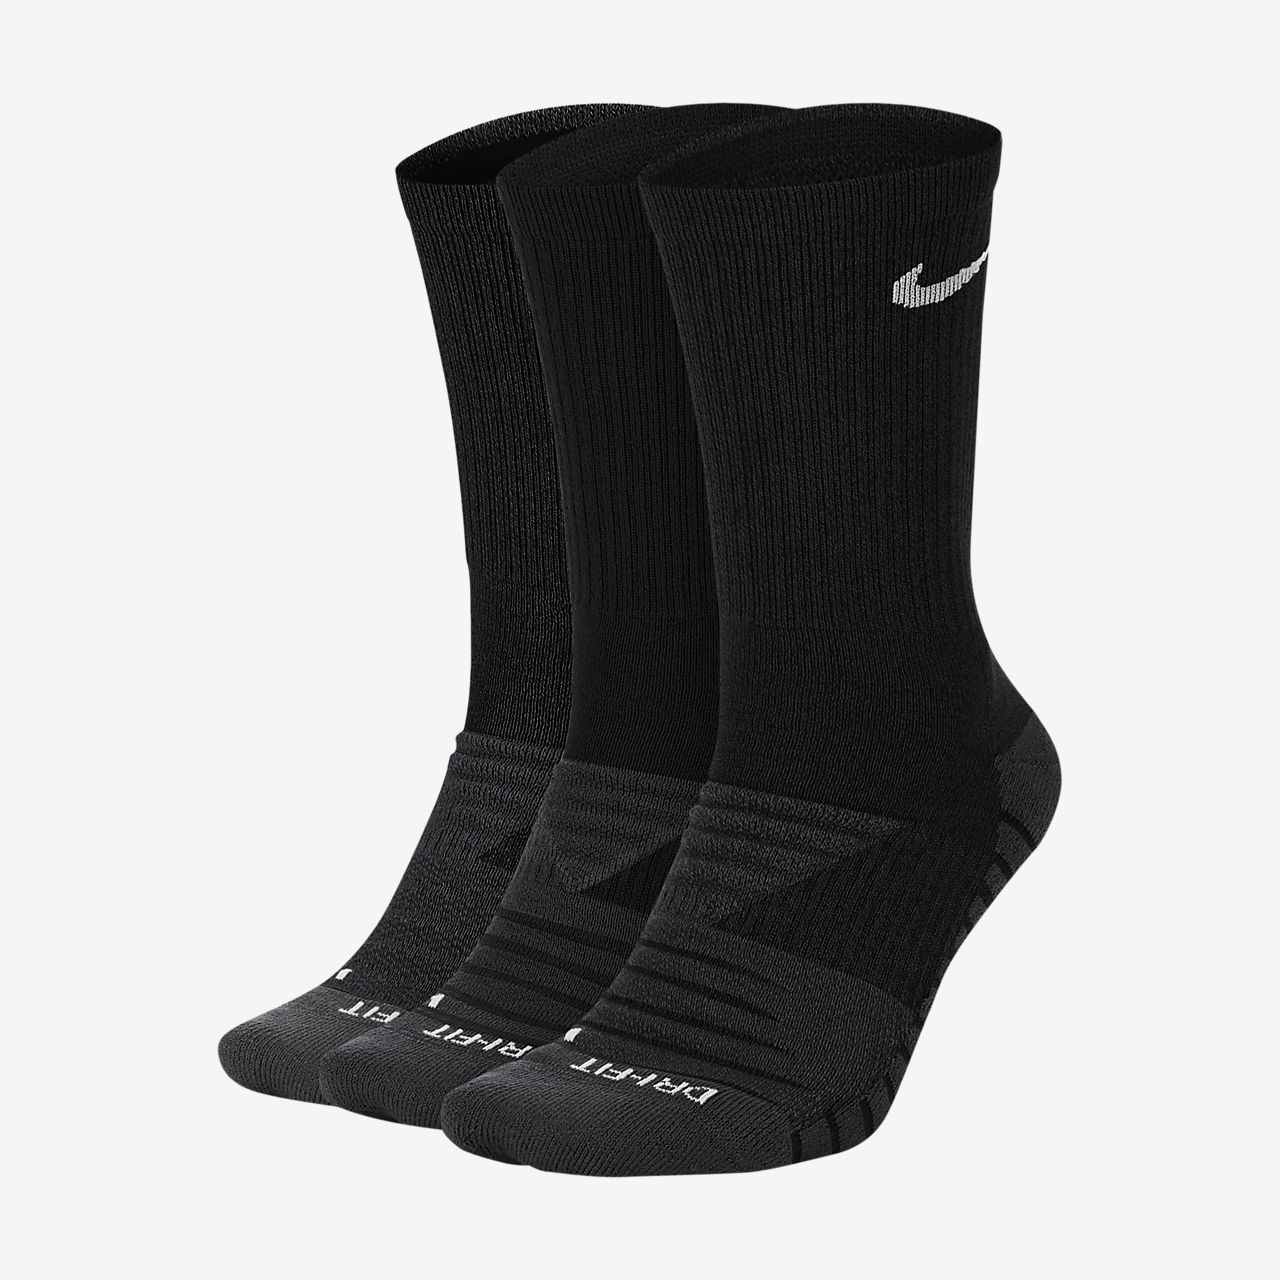 Nike Everyday Max Cushioned Training Crew Socks (3 Pairs)